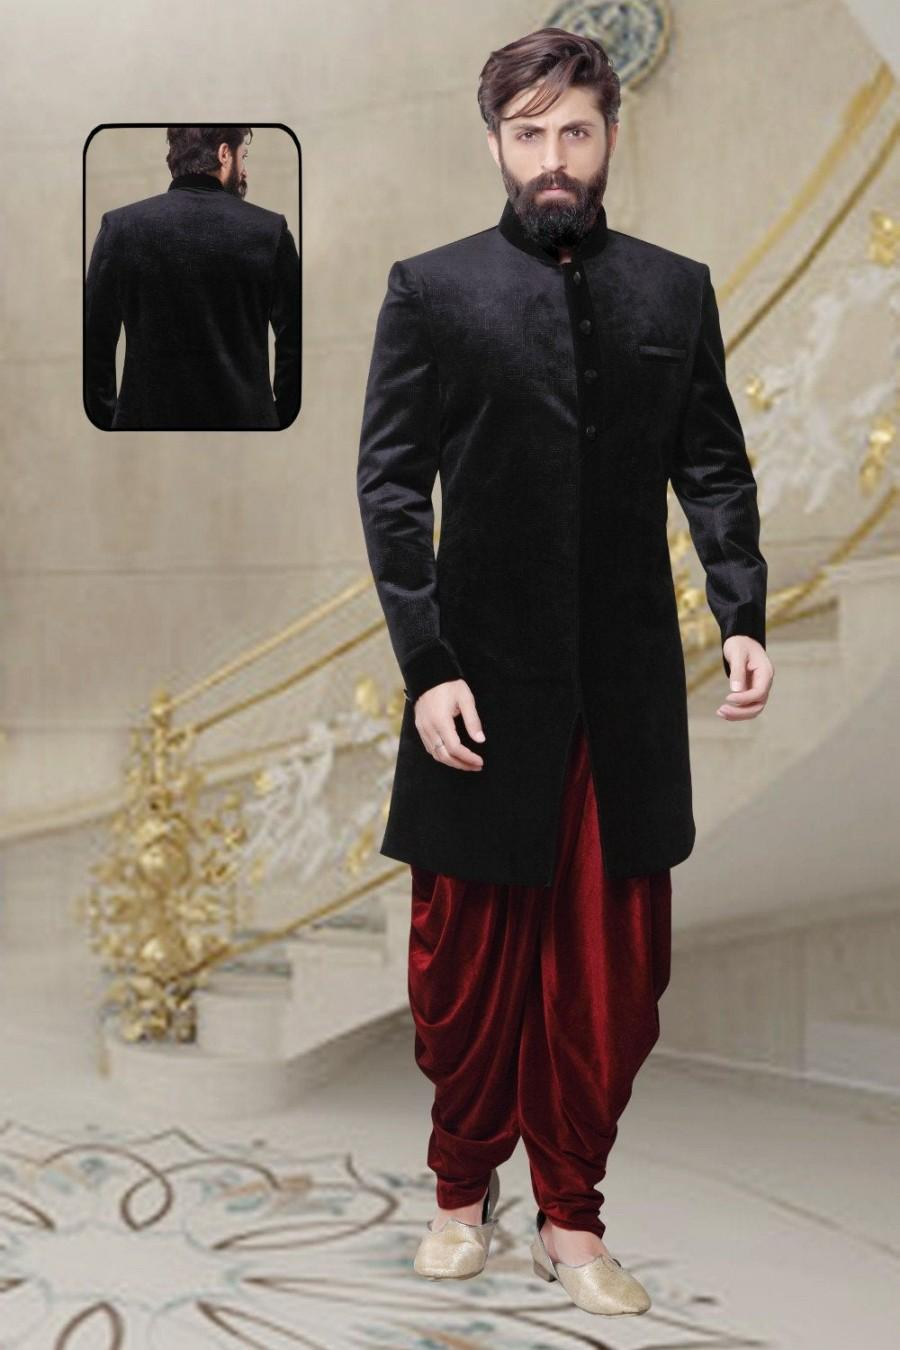 Wedding - Indian Sherwani for Men in Velvet For Wedding Ceremony Festival Indo-Western Style Royal Outfit ( More Colors available )